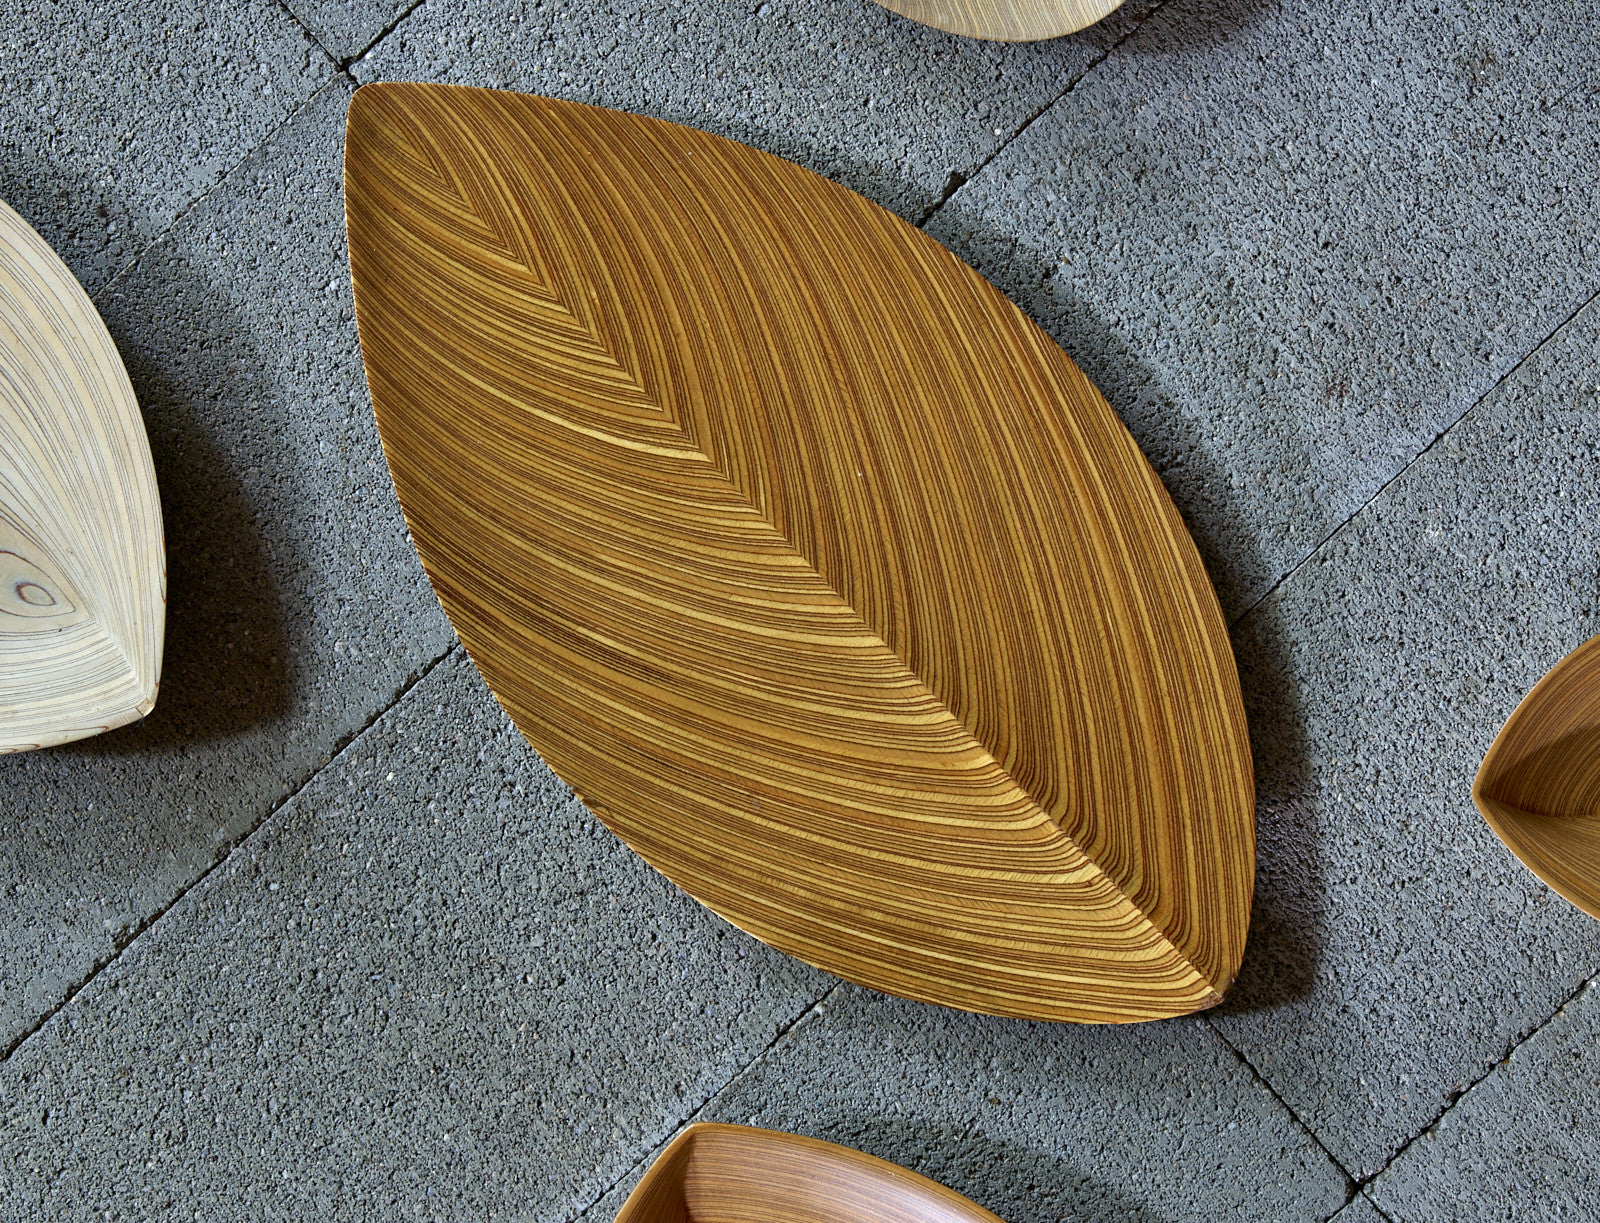 Tapio Wirkkala Large Overleaf Dish, Early 1950s - The Exchange Int